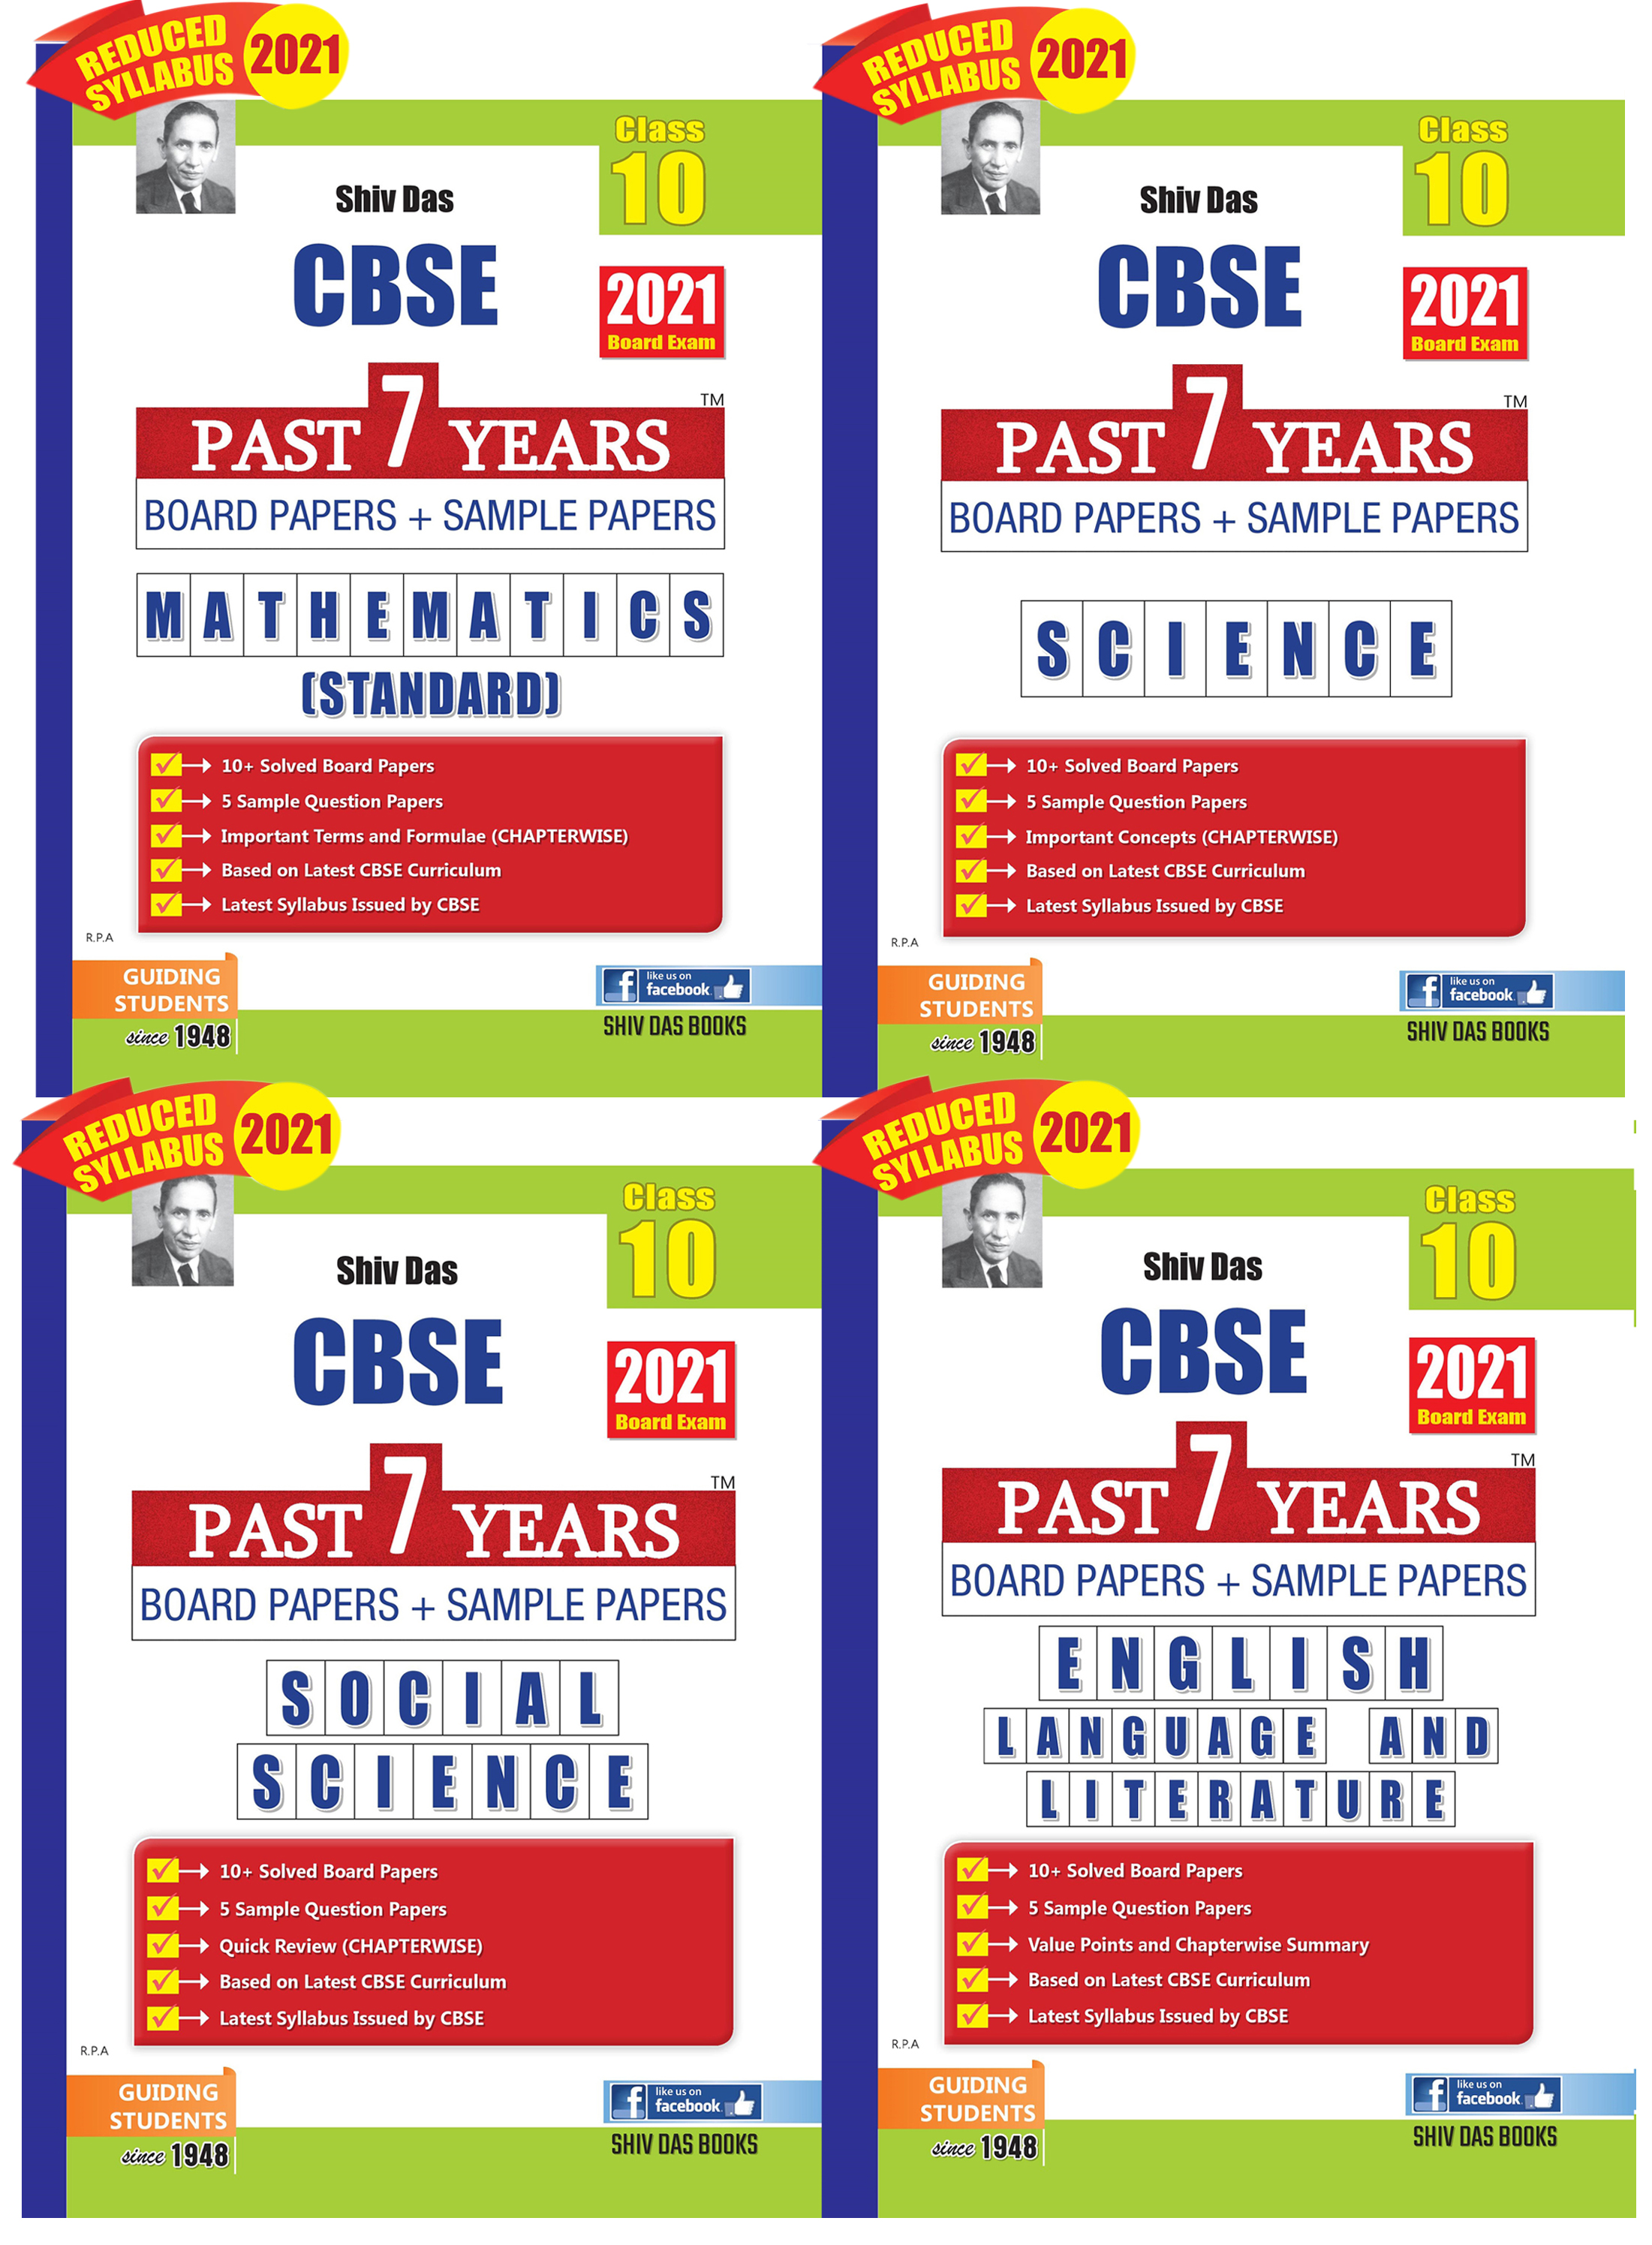 Shivdas CBSE Past 7 Years Solved Board Papers and Sample Papers Combo Pack for Class 10 Maths Science Social Science English Language and Literature (2021 Reduced Edition)